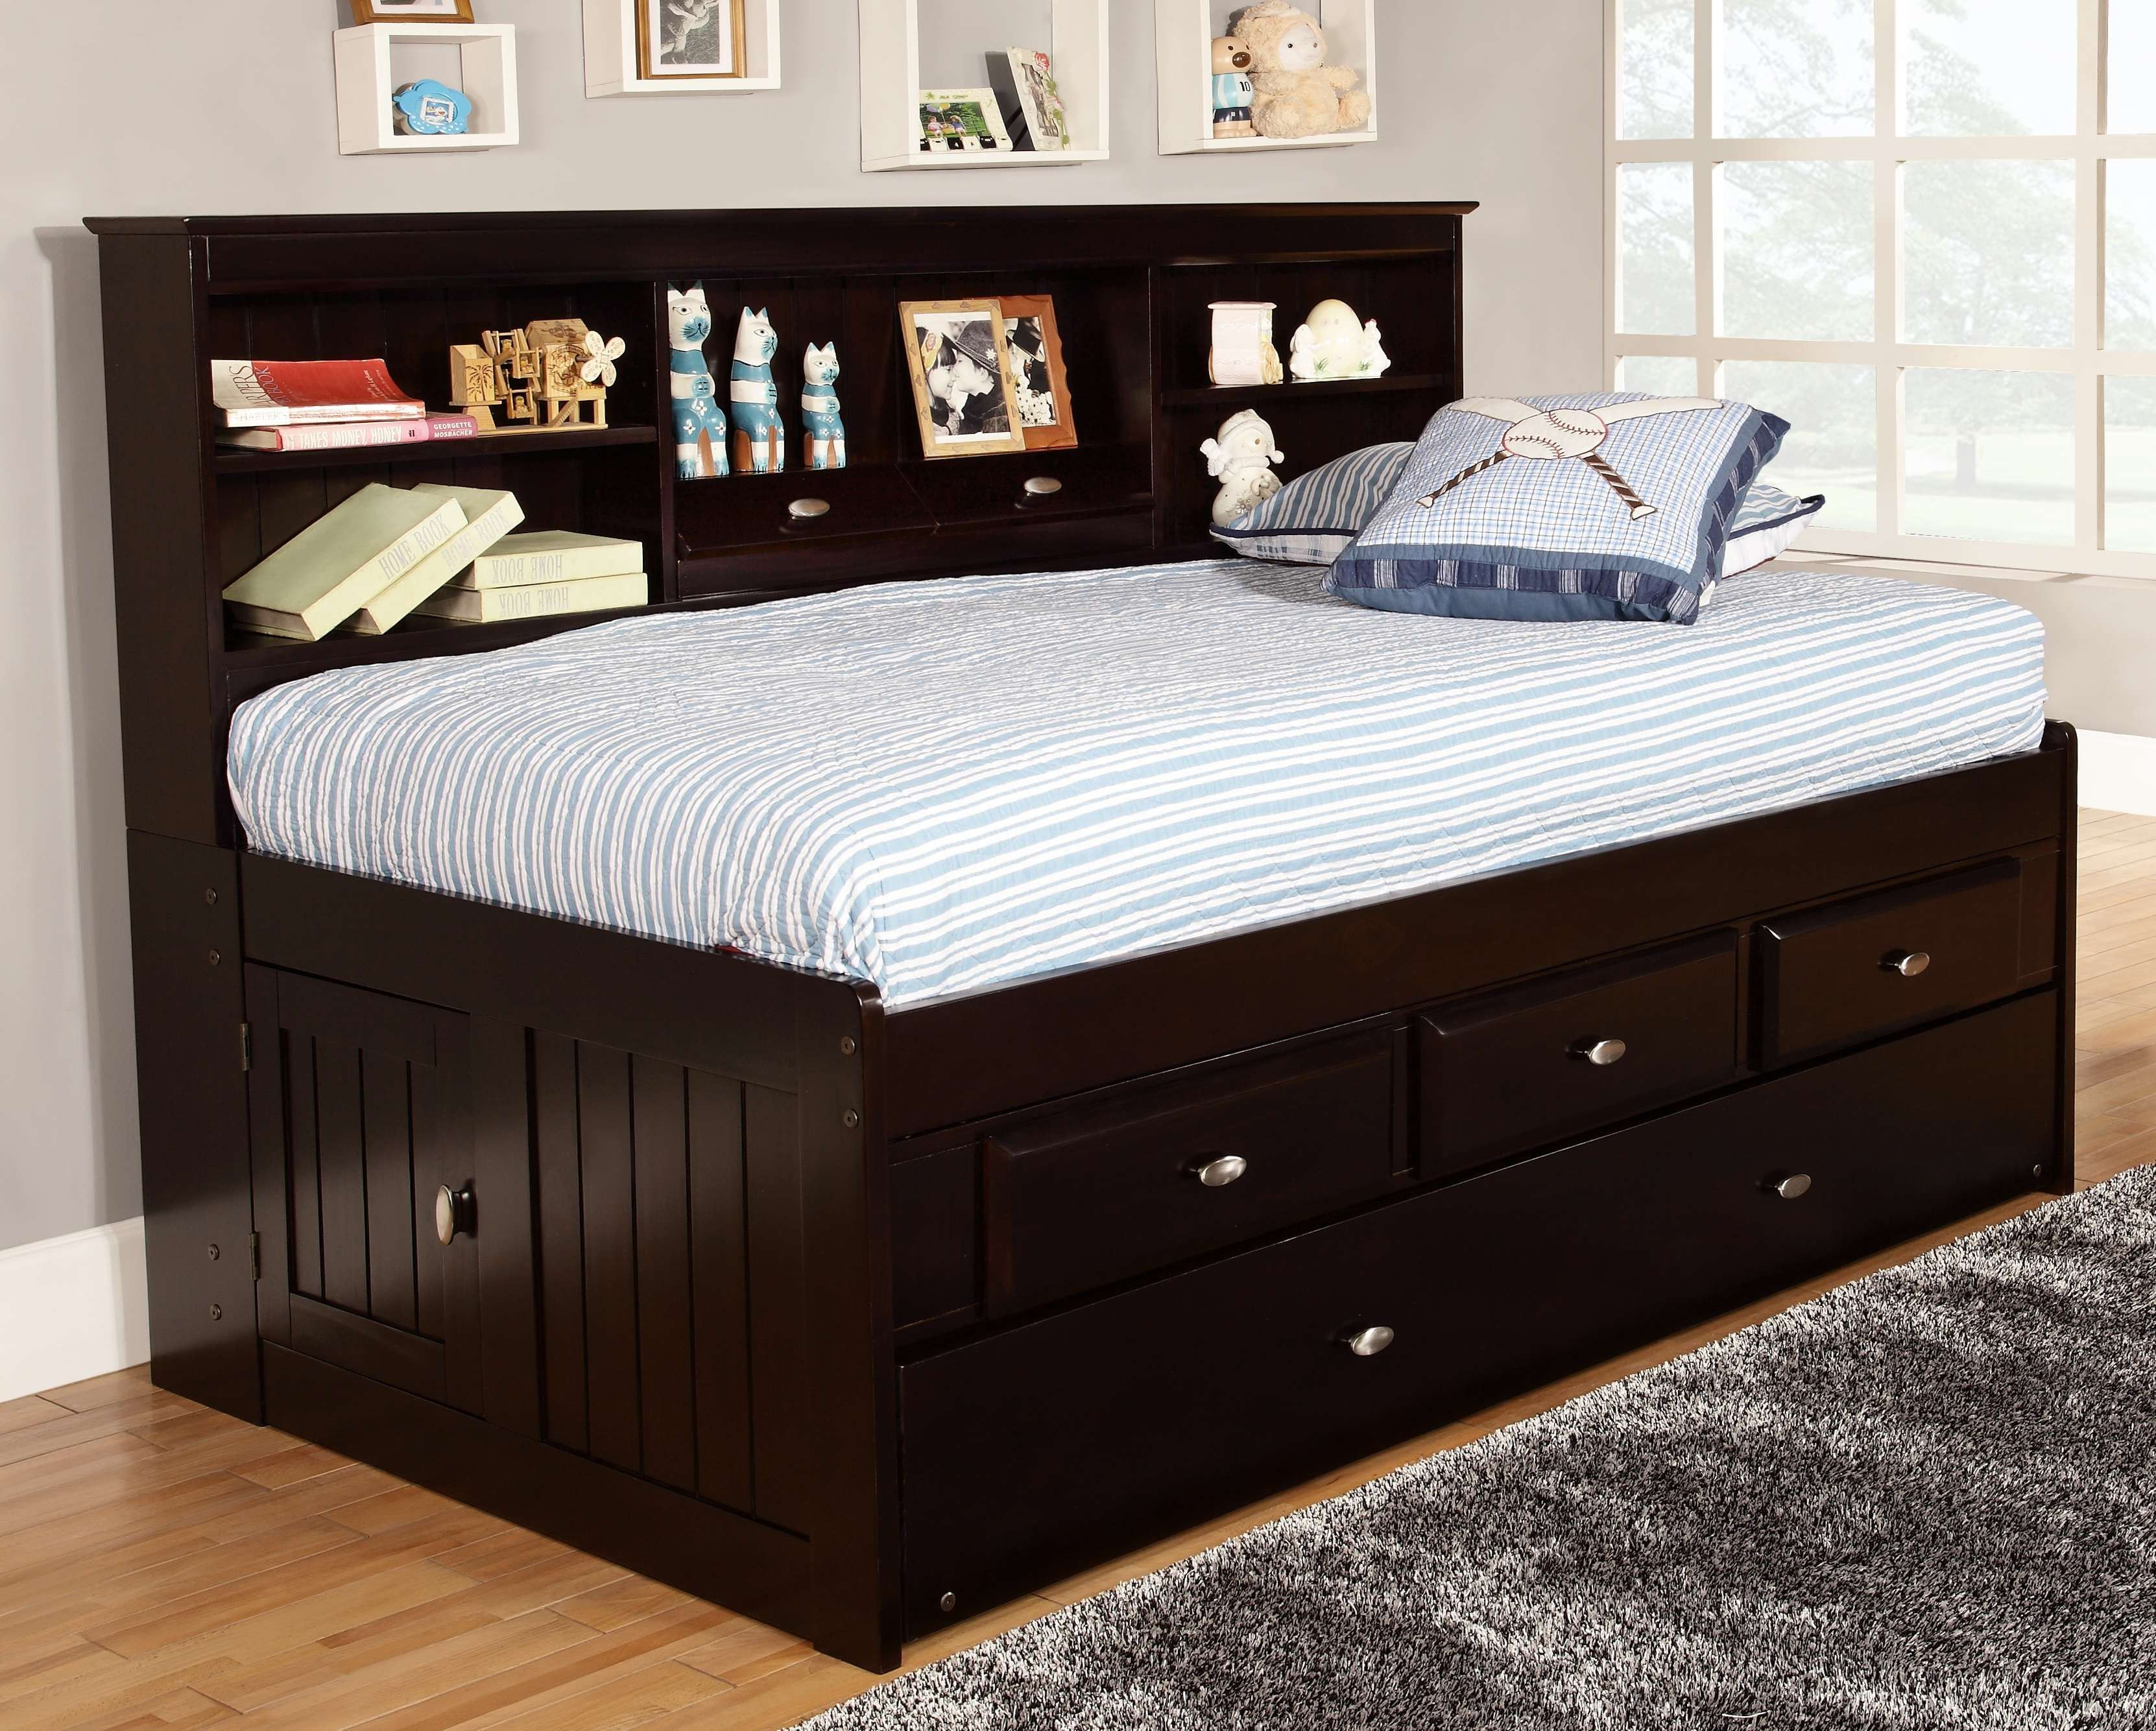 Discovery World Furniture Espresso Twin Captain Day Beds Daybed With Storage Twin Bed With